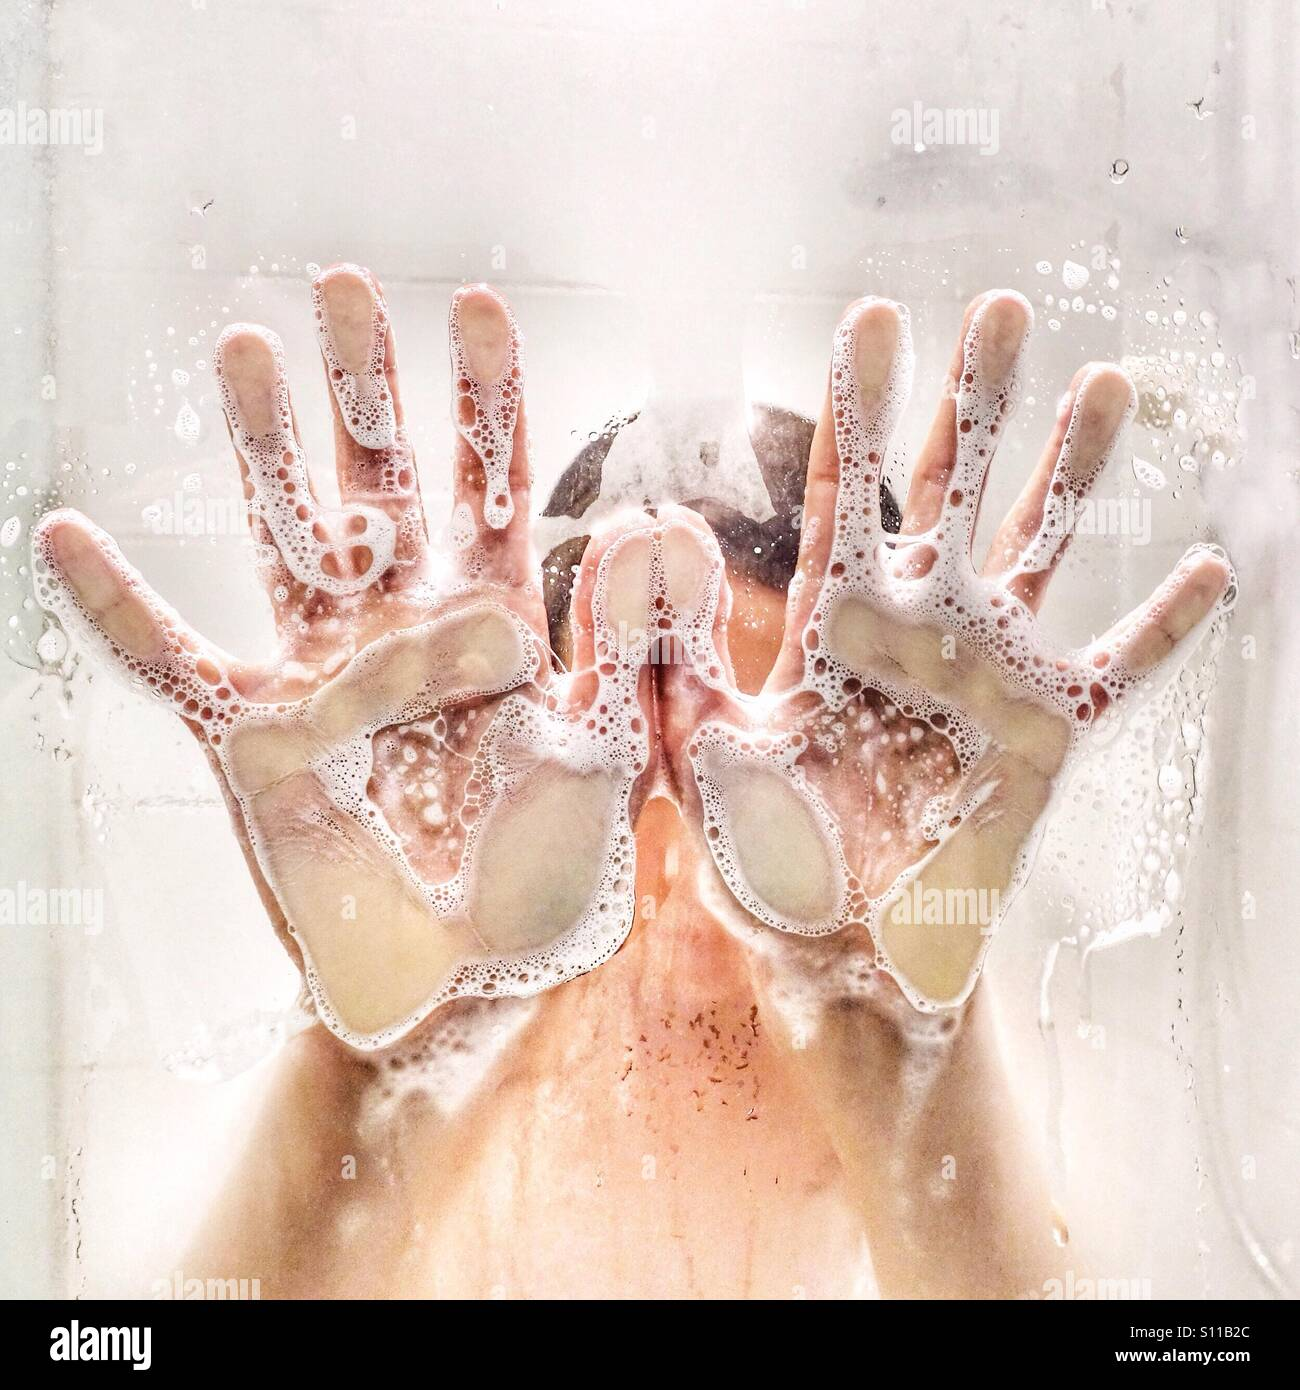 Child's soapy hands pressed against shower door - Stock Image